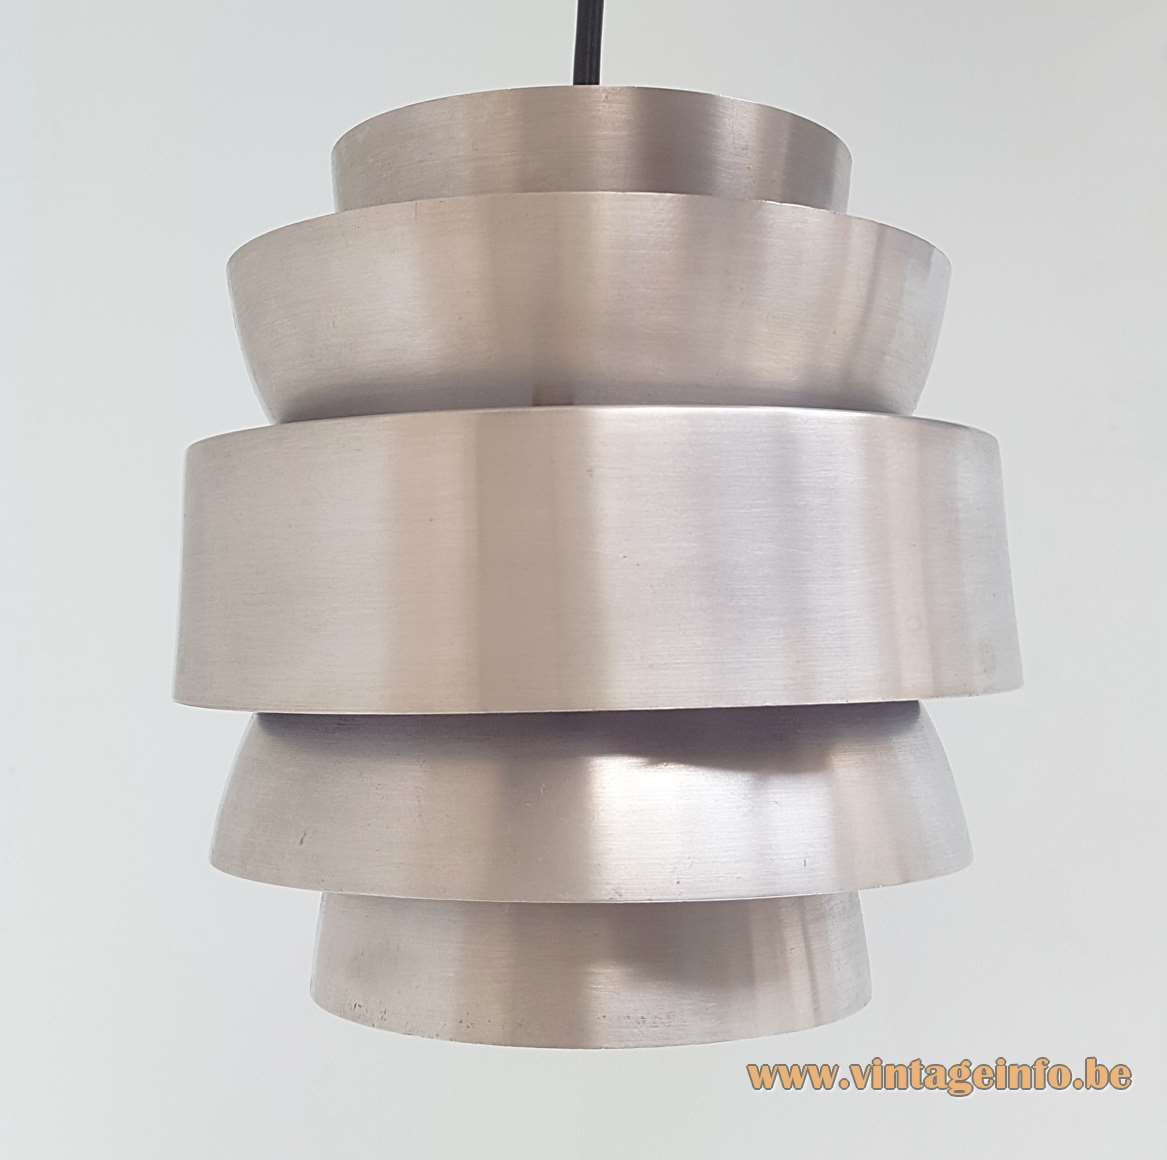 Lakro cascading pendant chandelier aluminium cylinders lamp in purple design: Carl Thore 1960s 1970s